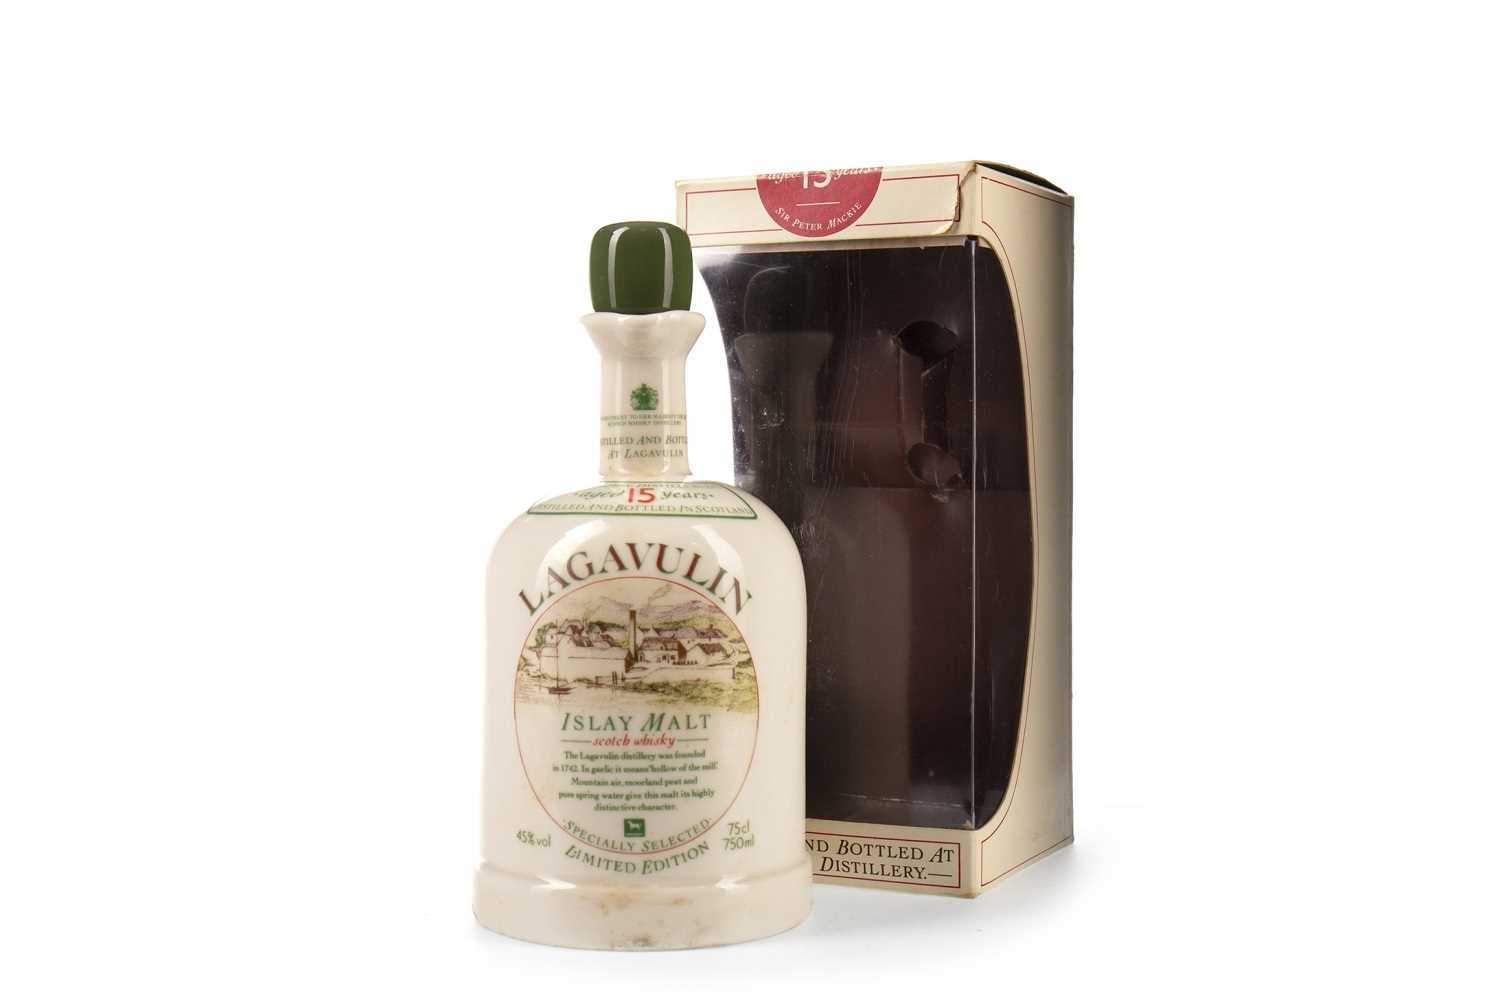 Lot 4-LAGAVULIN WHITE HORSE DECANTER AGED 15 YEARS